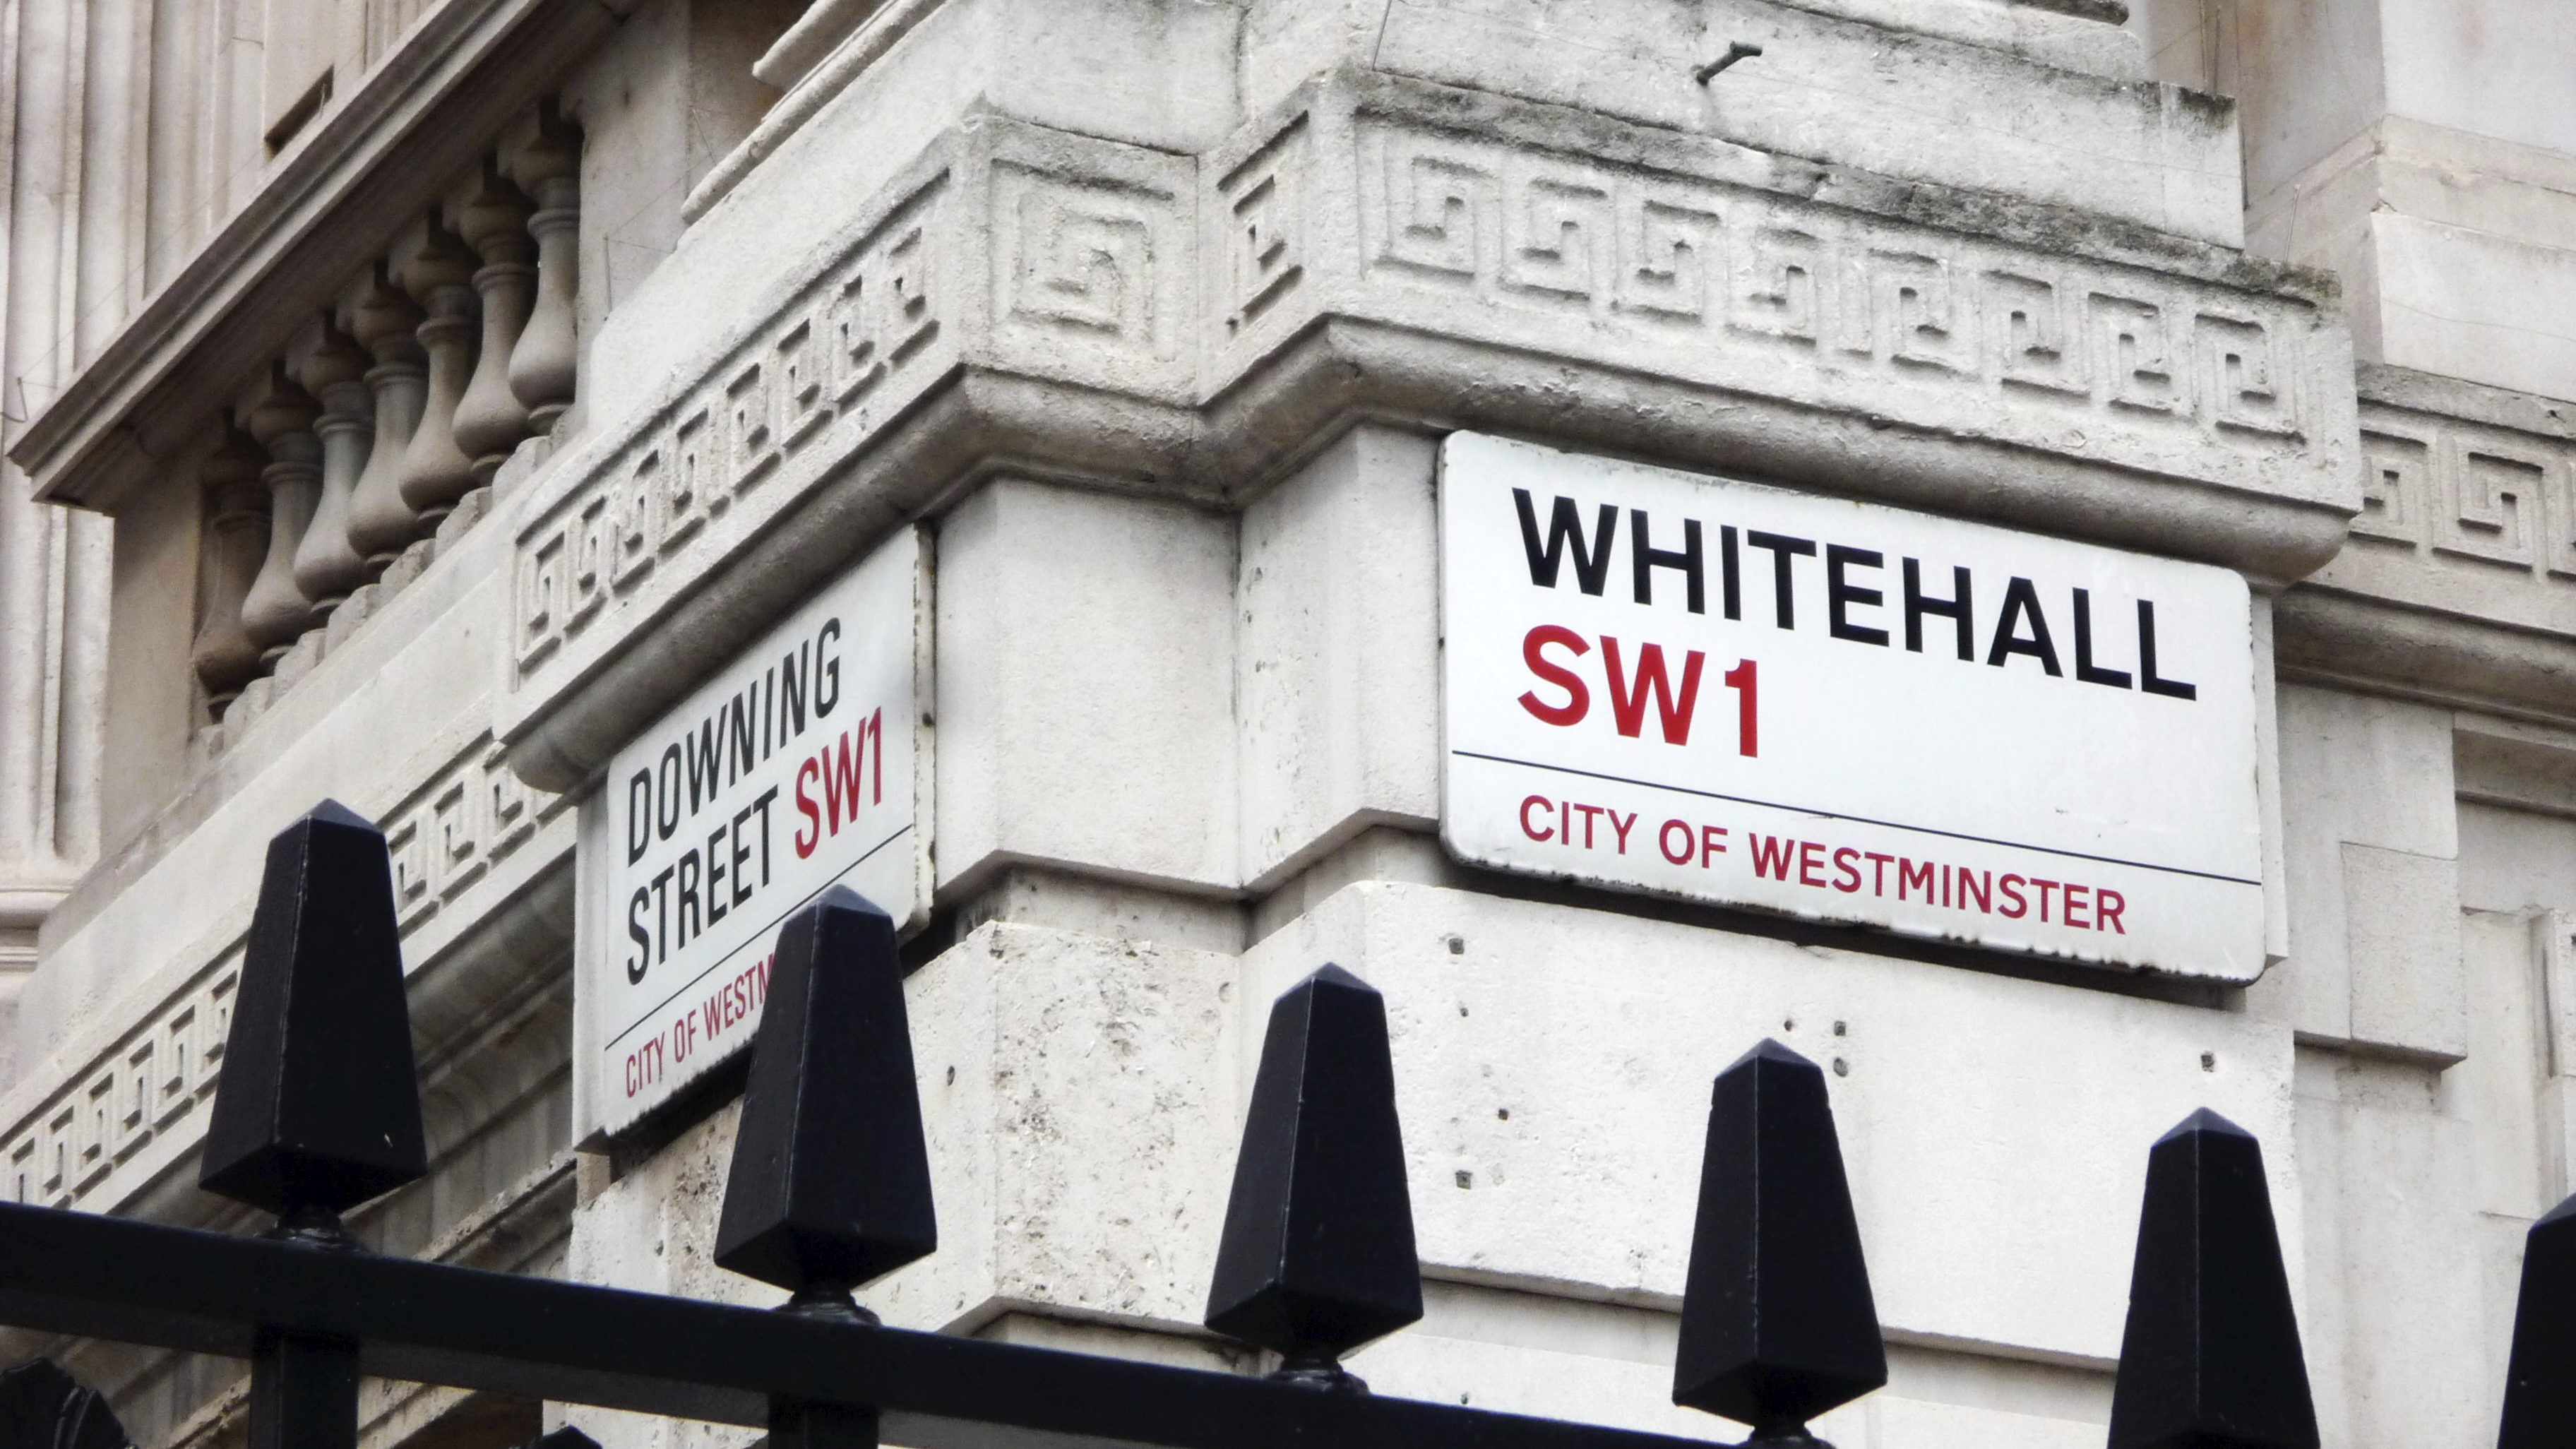 Whitehall and Downing Street